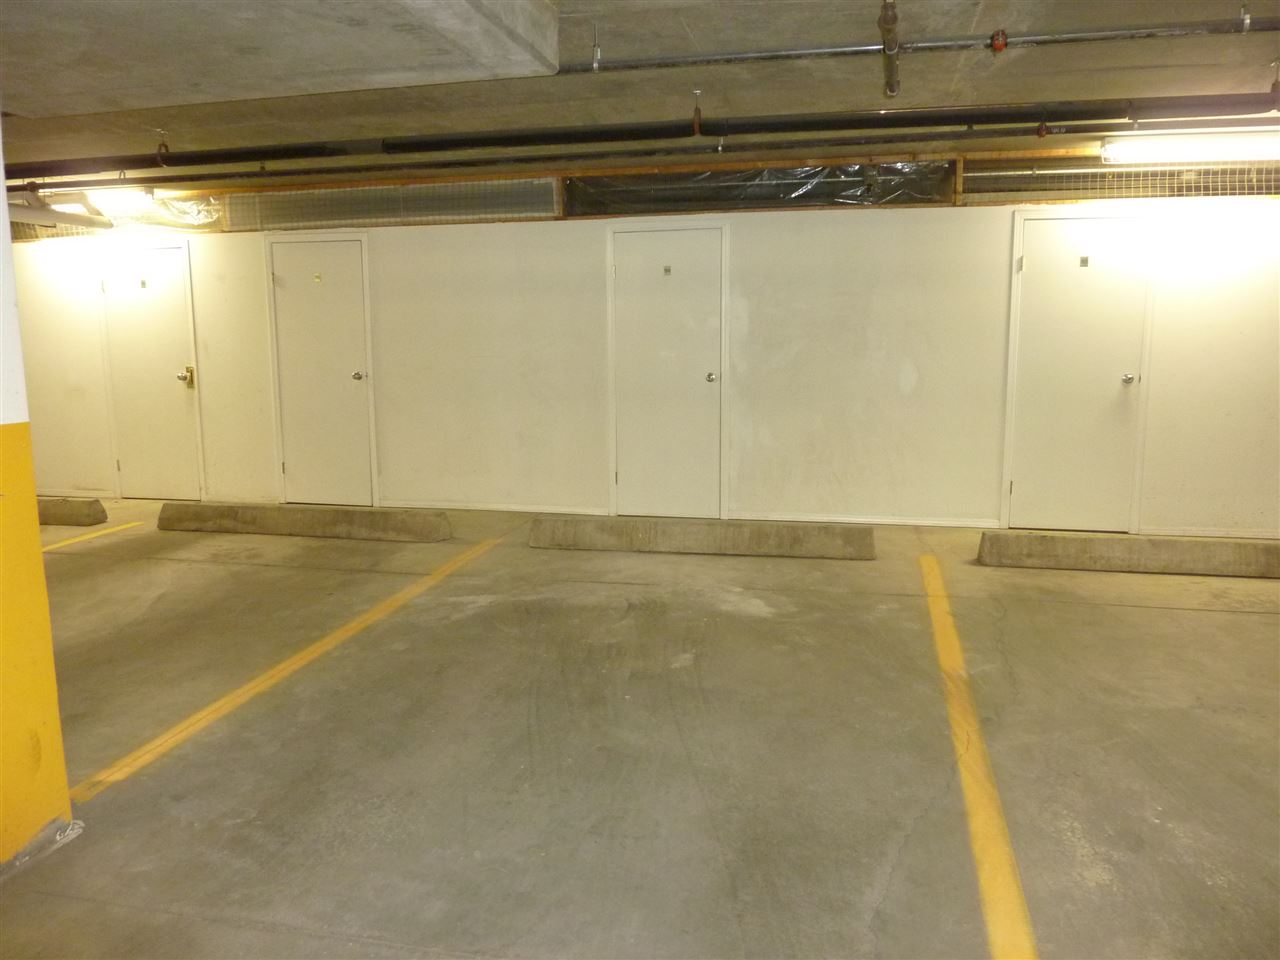 Underground parking with storage unit